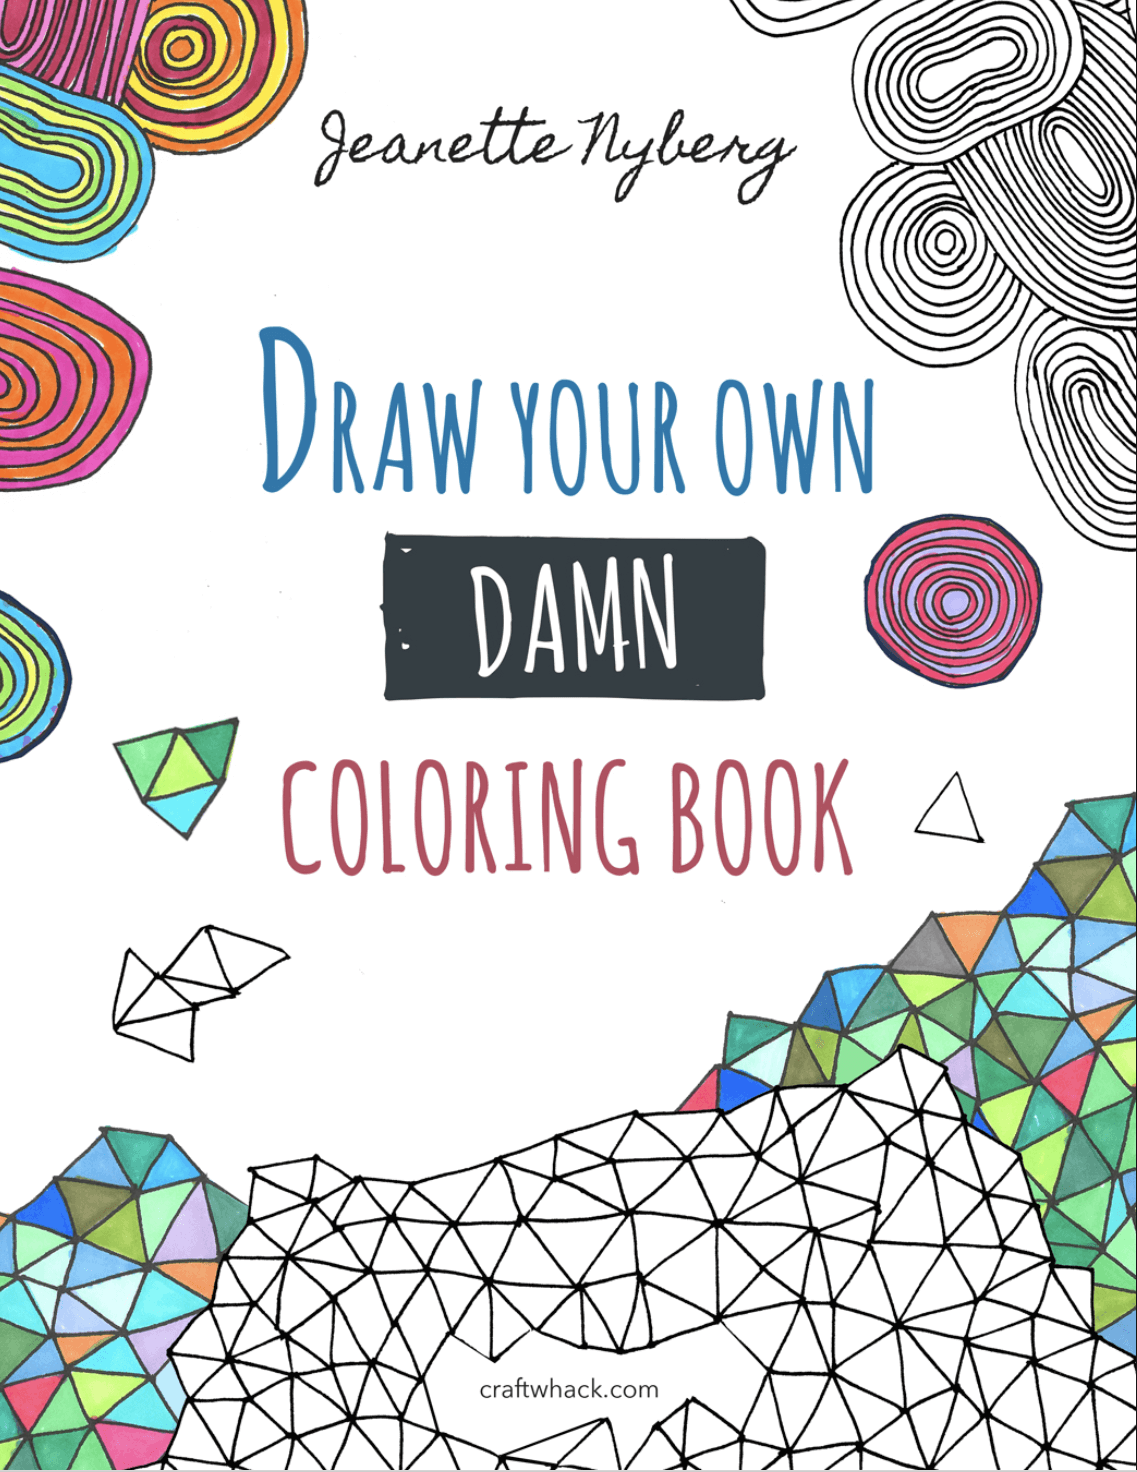 Cute Book Cover Drawing : It s time to draw your own damn coloring book craftwhack